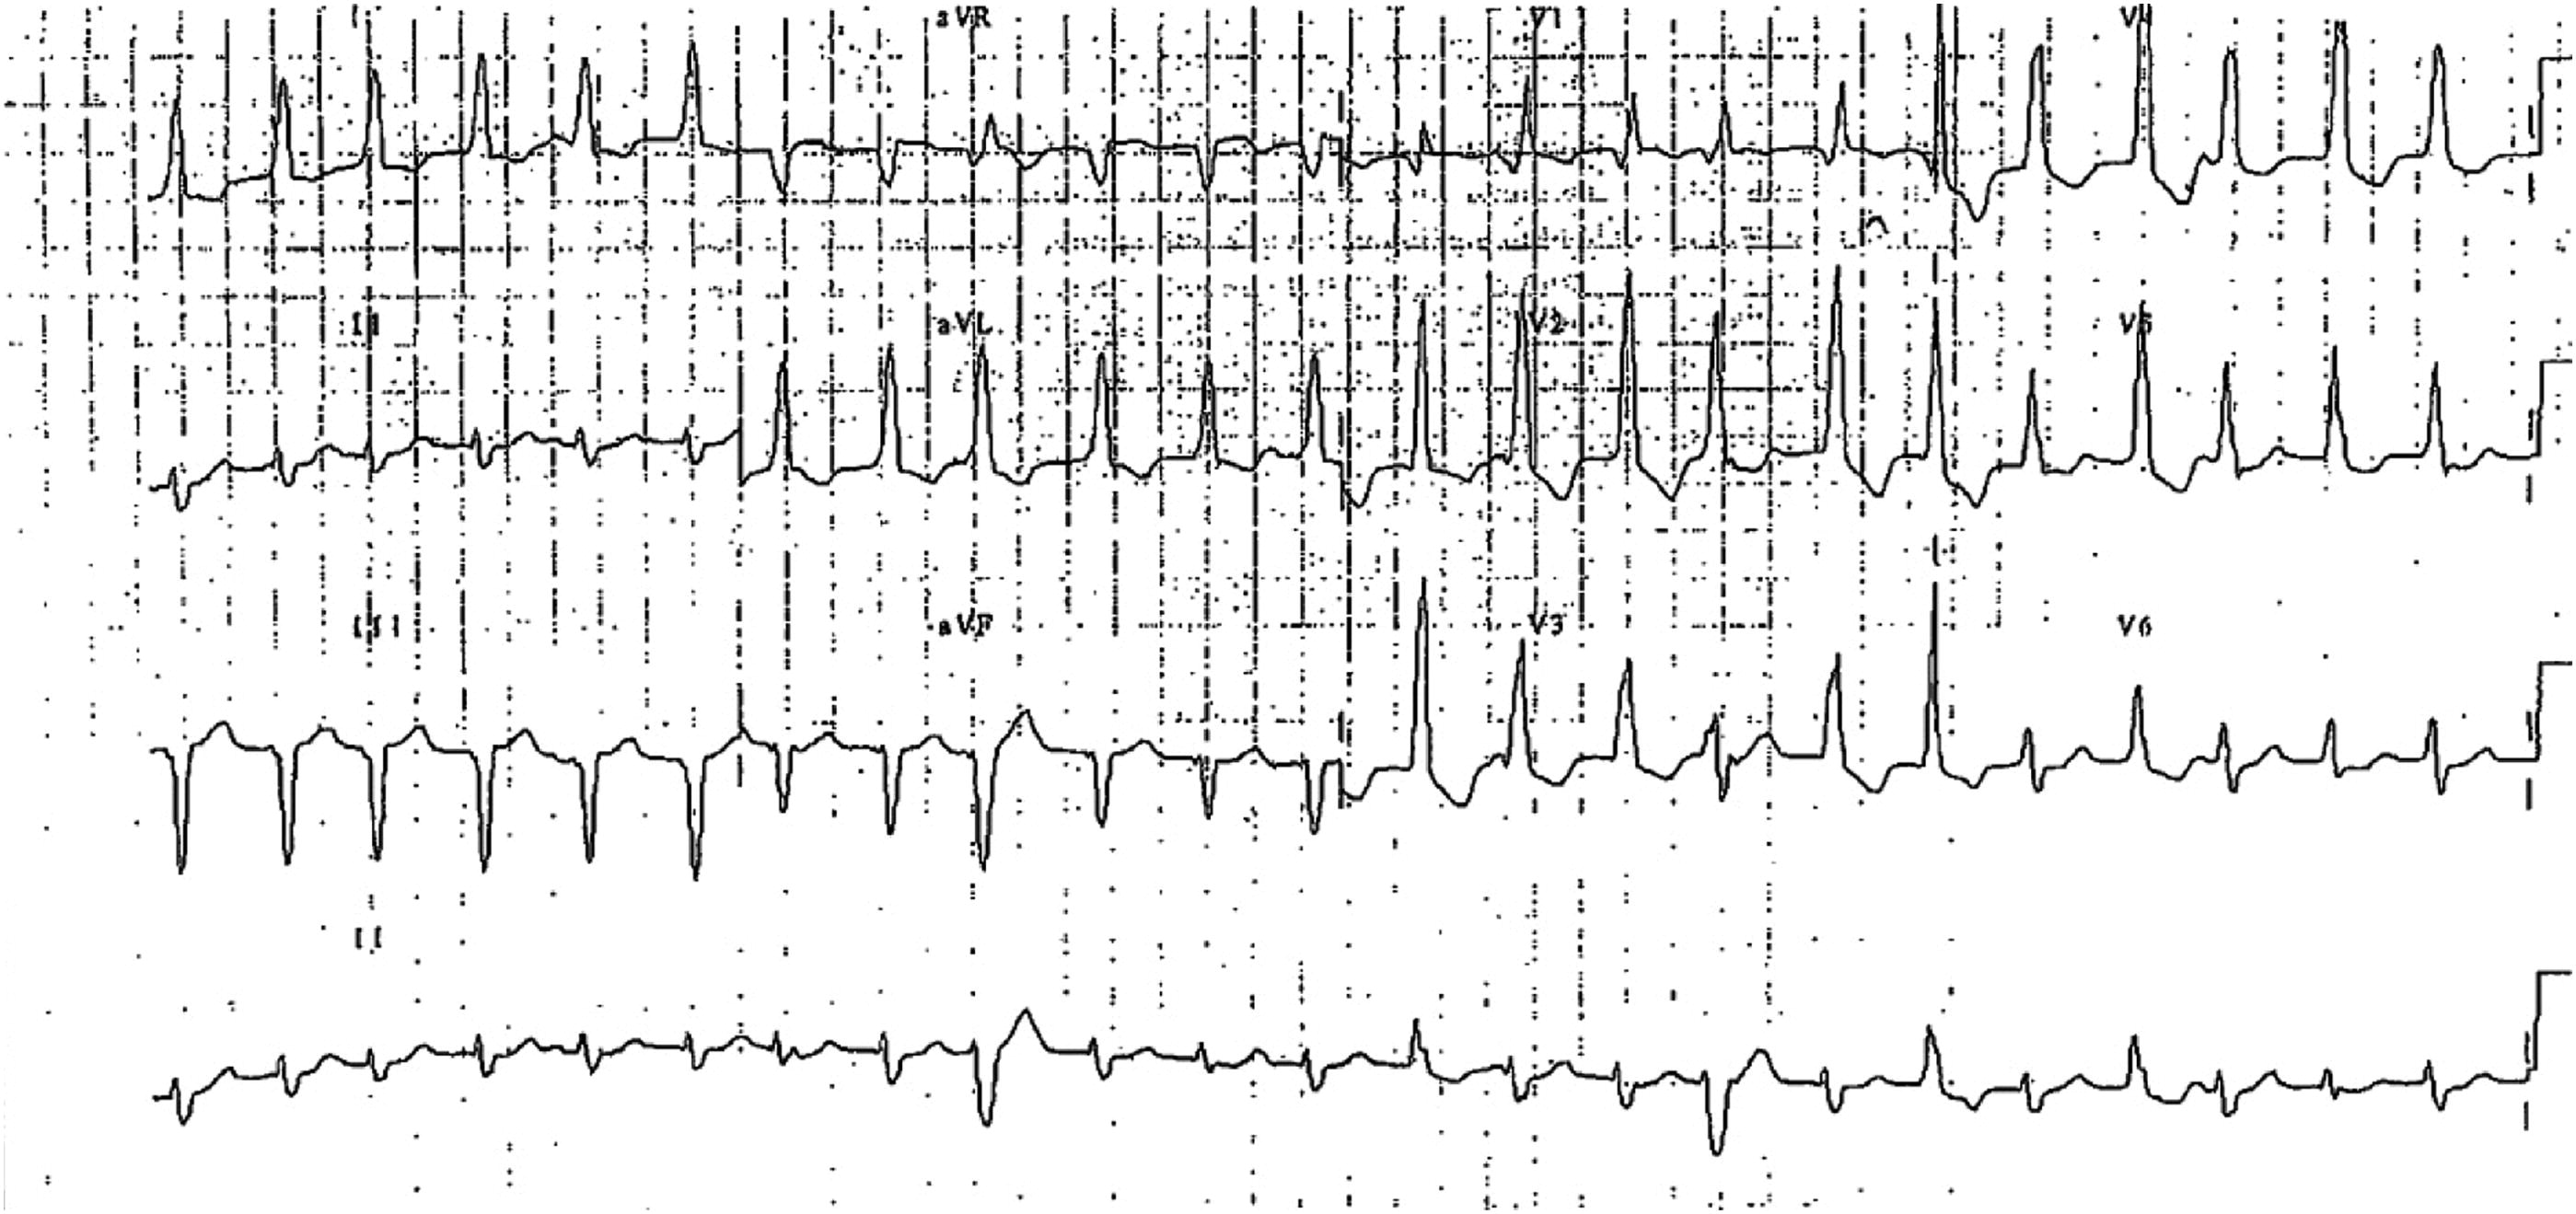 New Irregular Rhythm In A Patient With Baseline Left Bundle Branch Block